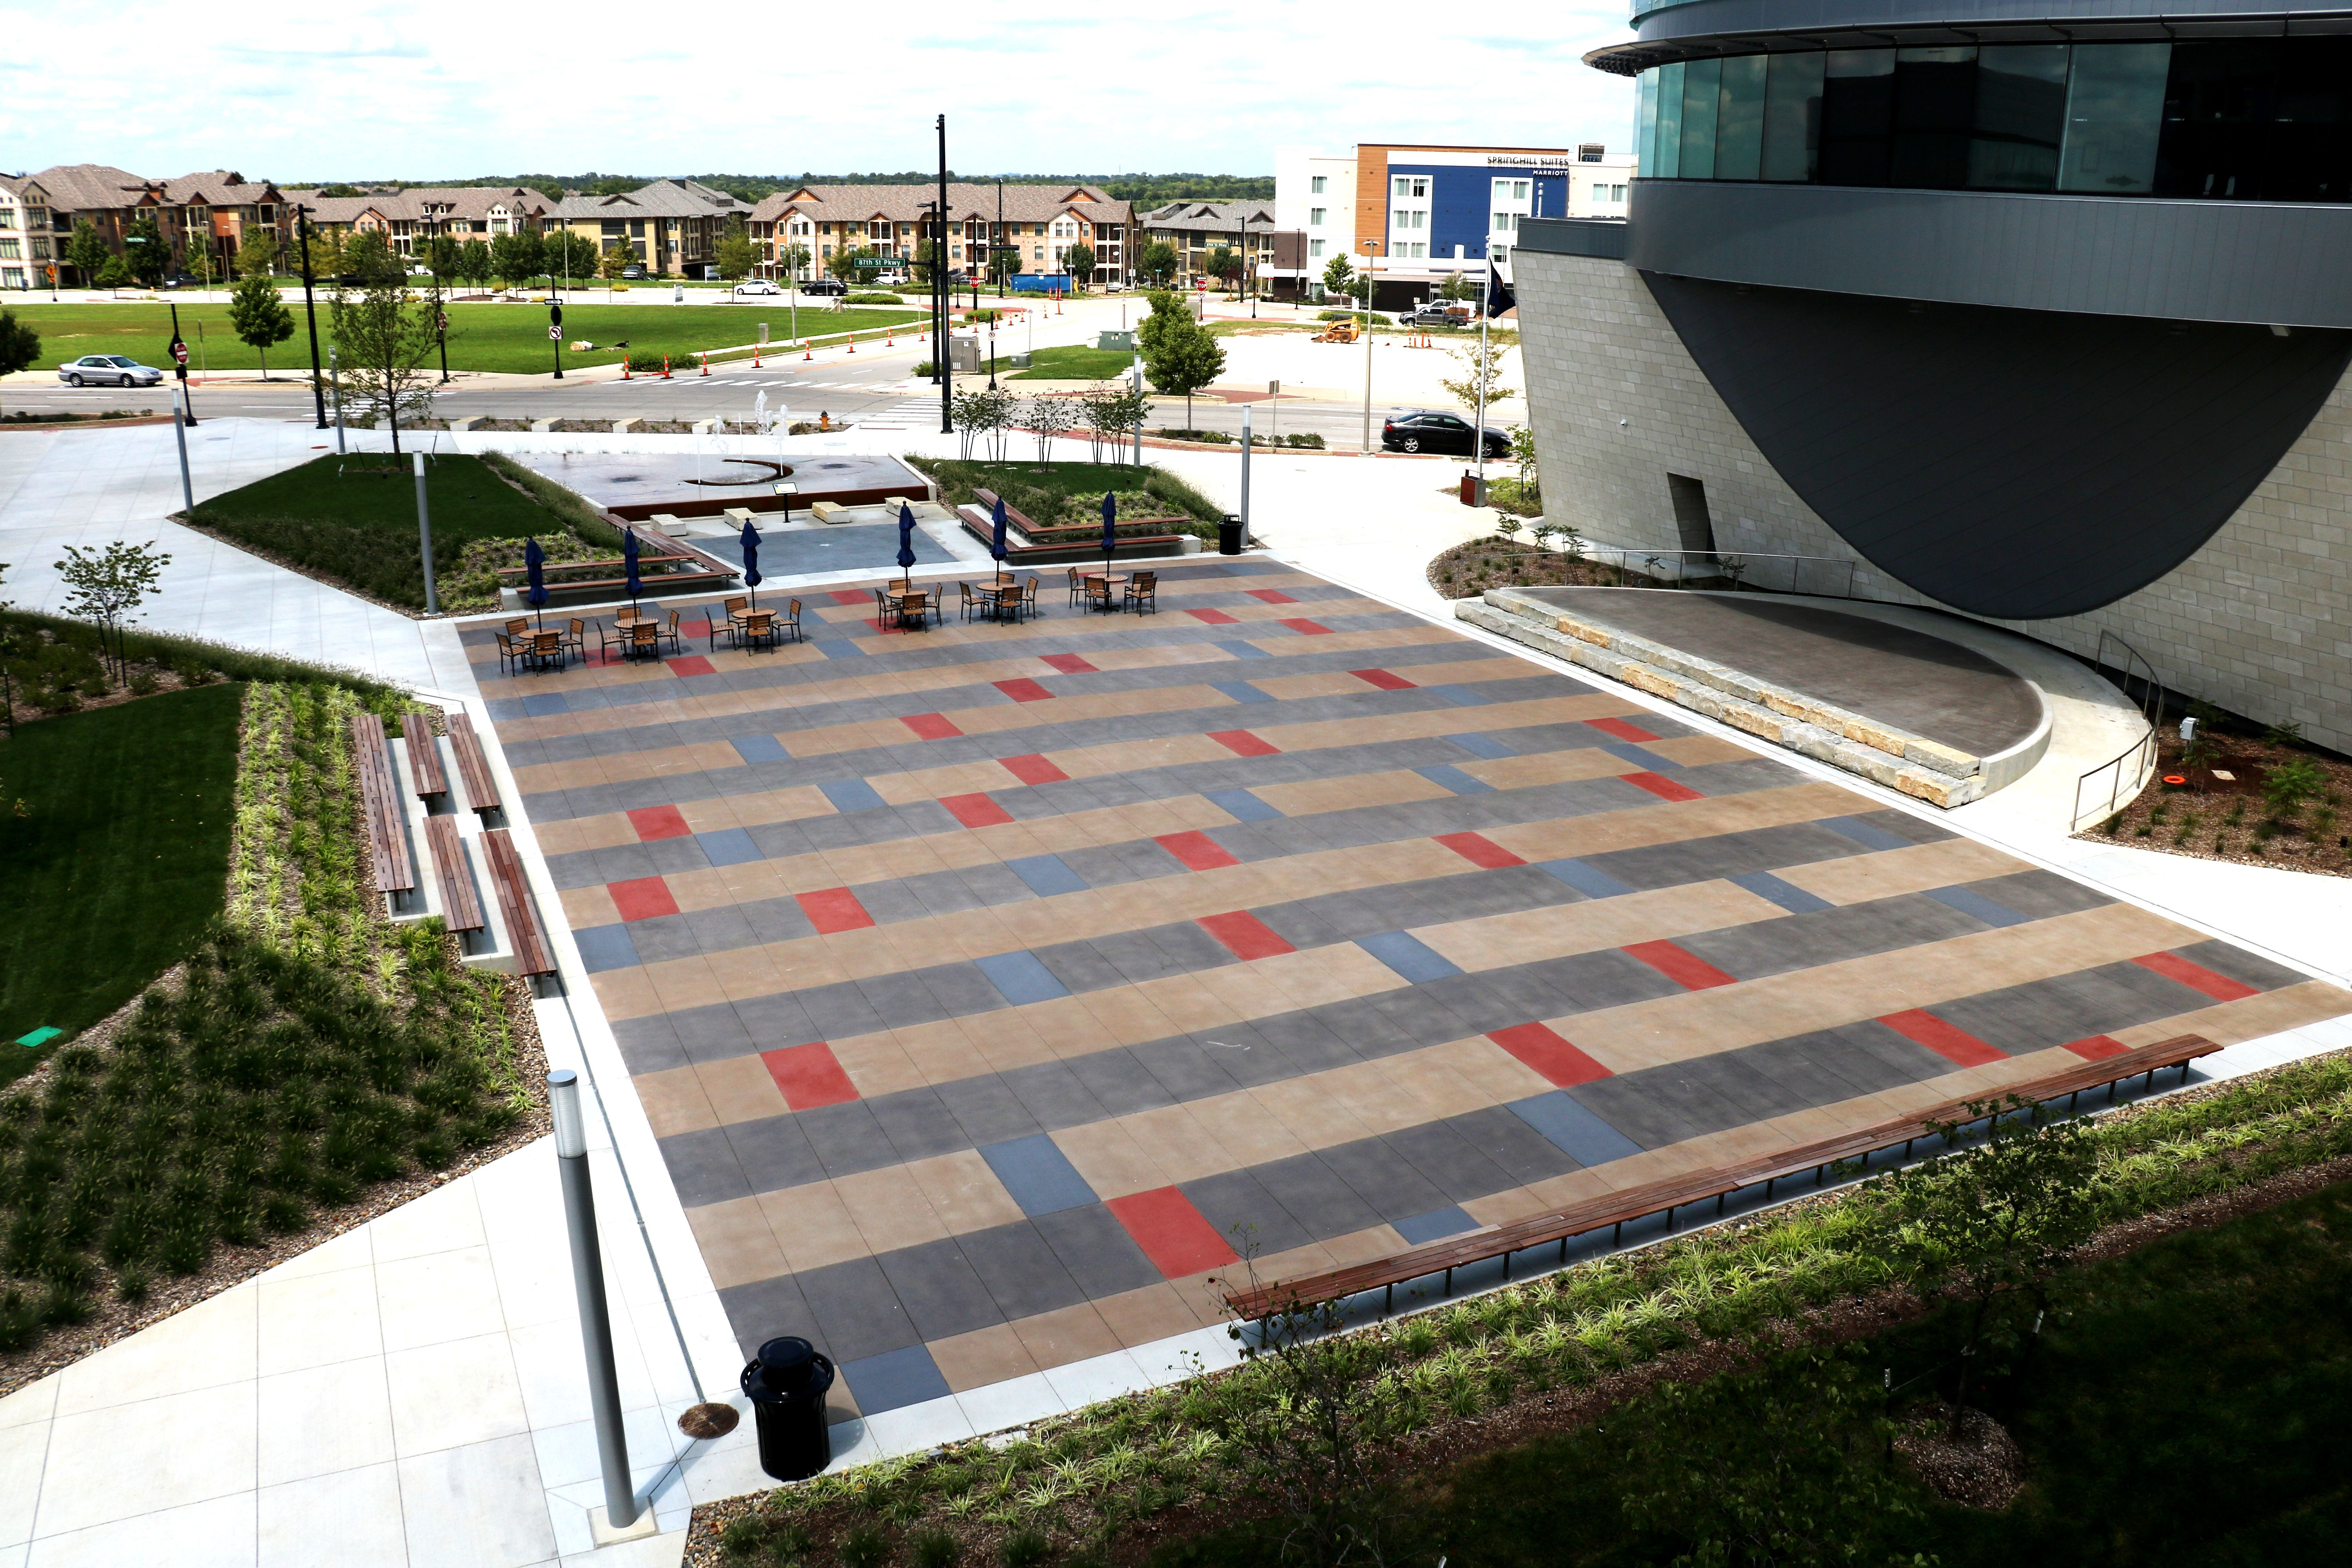 Bomanite Sandscape Texture with Bomanite Con-Color is featured at the Lenexa Civic Center Festival Plaza and Bomanite Alloy at the Hist